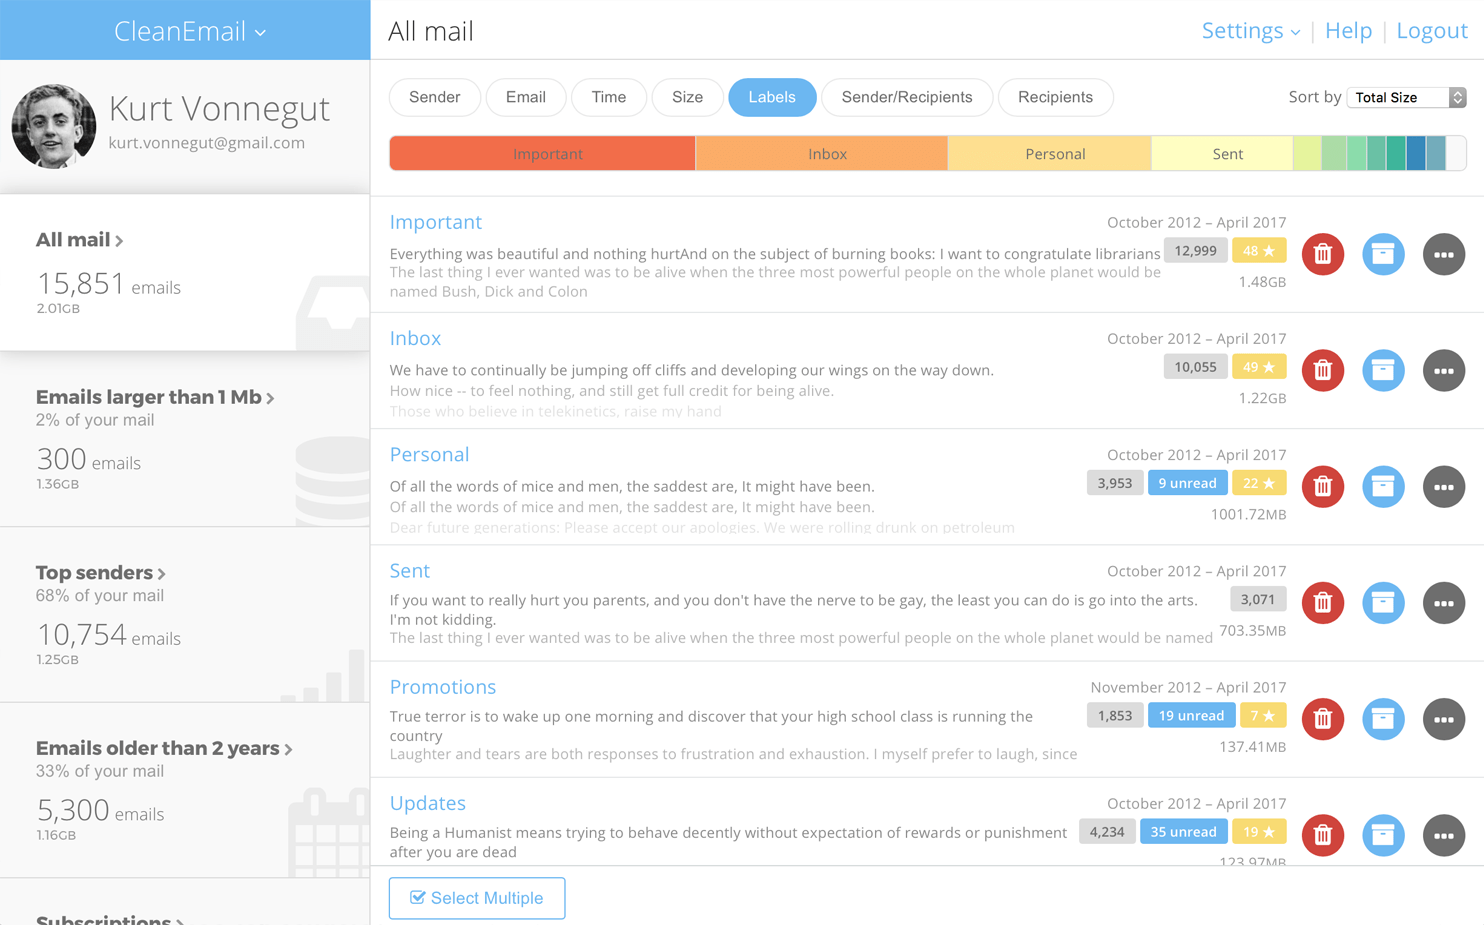 Clean Email organizes mailbox into smart views using rules and filters to simplify email management